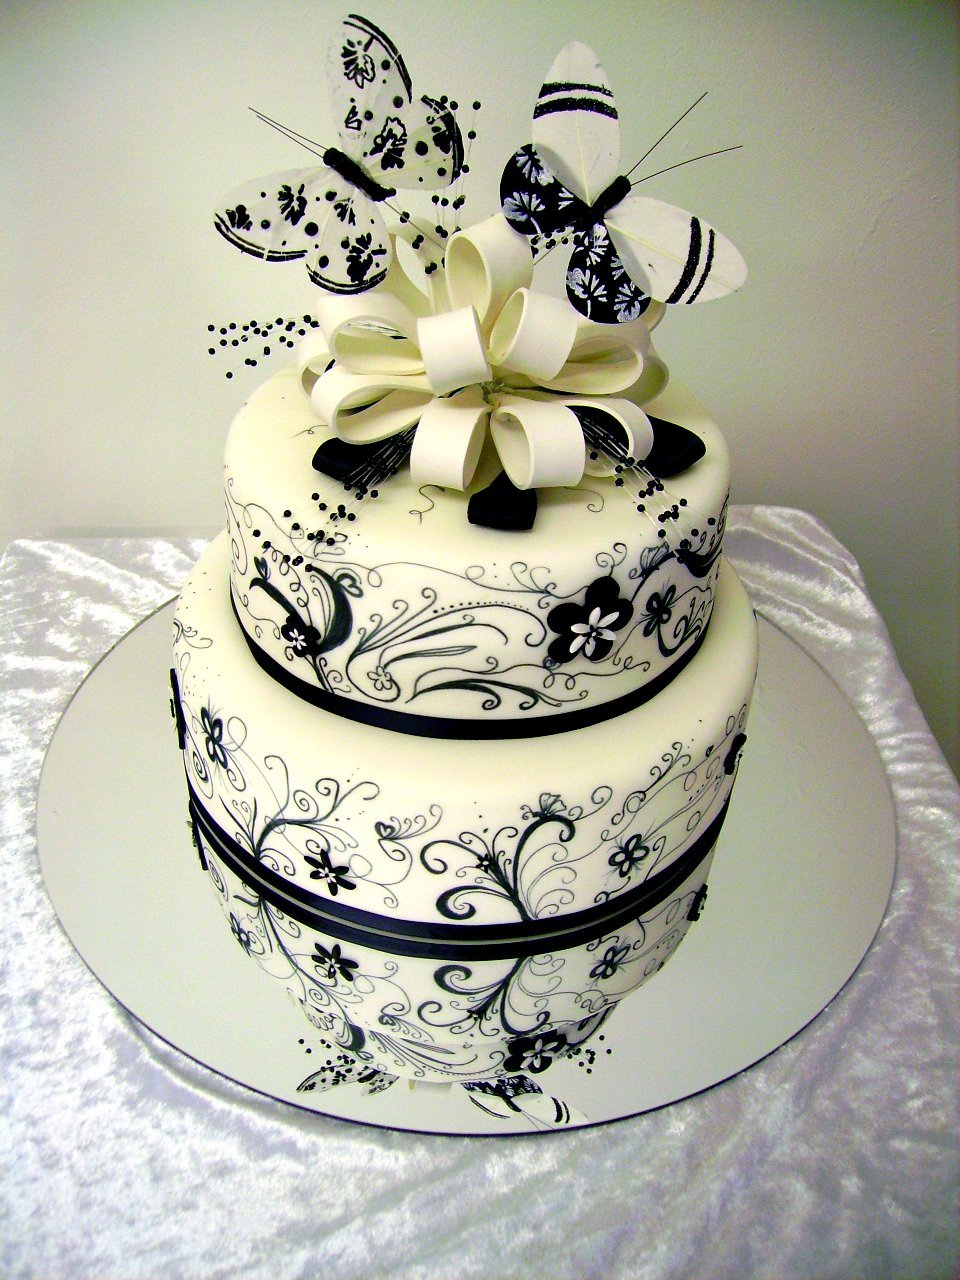 Wedding Cake Decor - Wedding and Bridal Inspiration